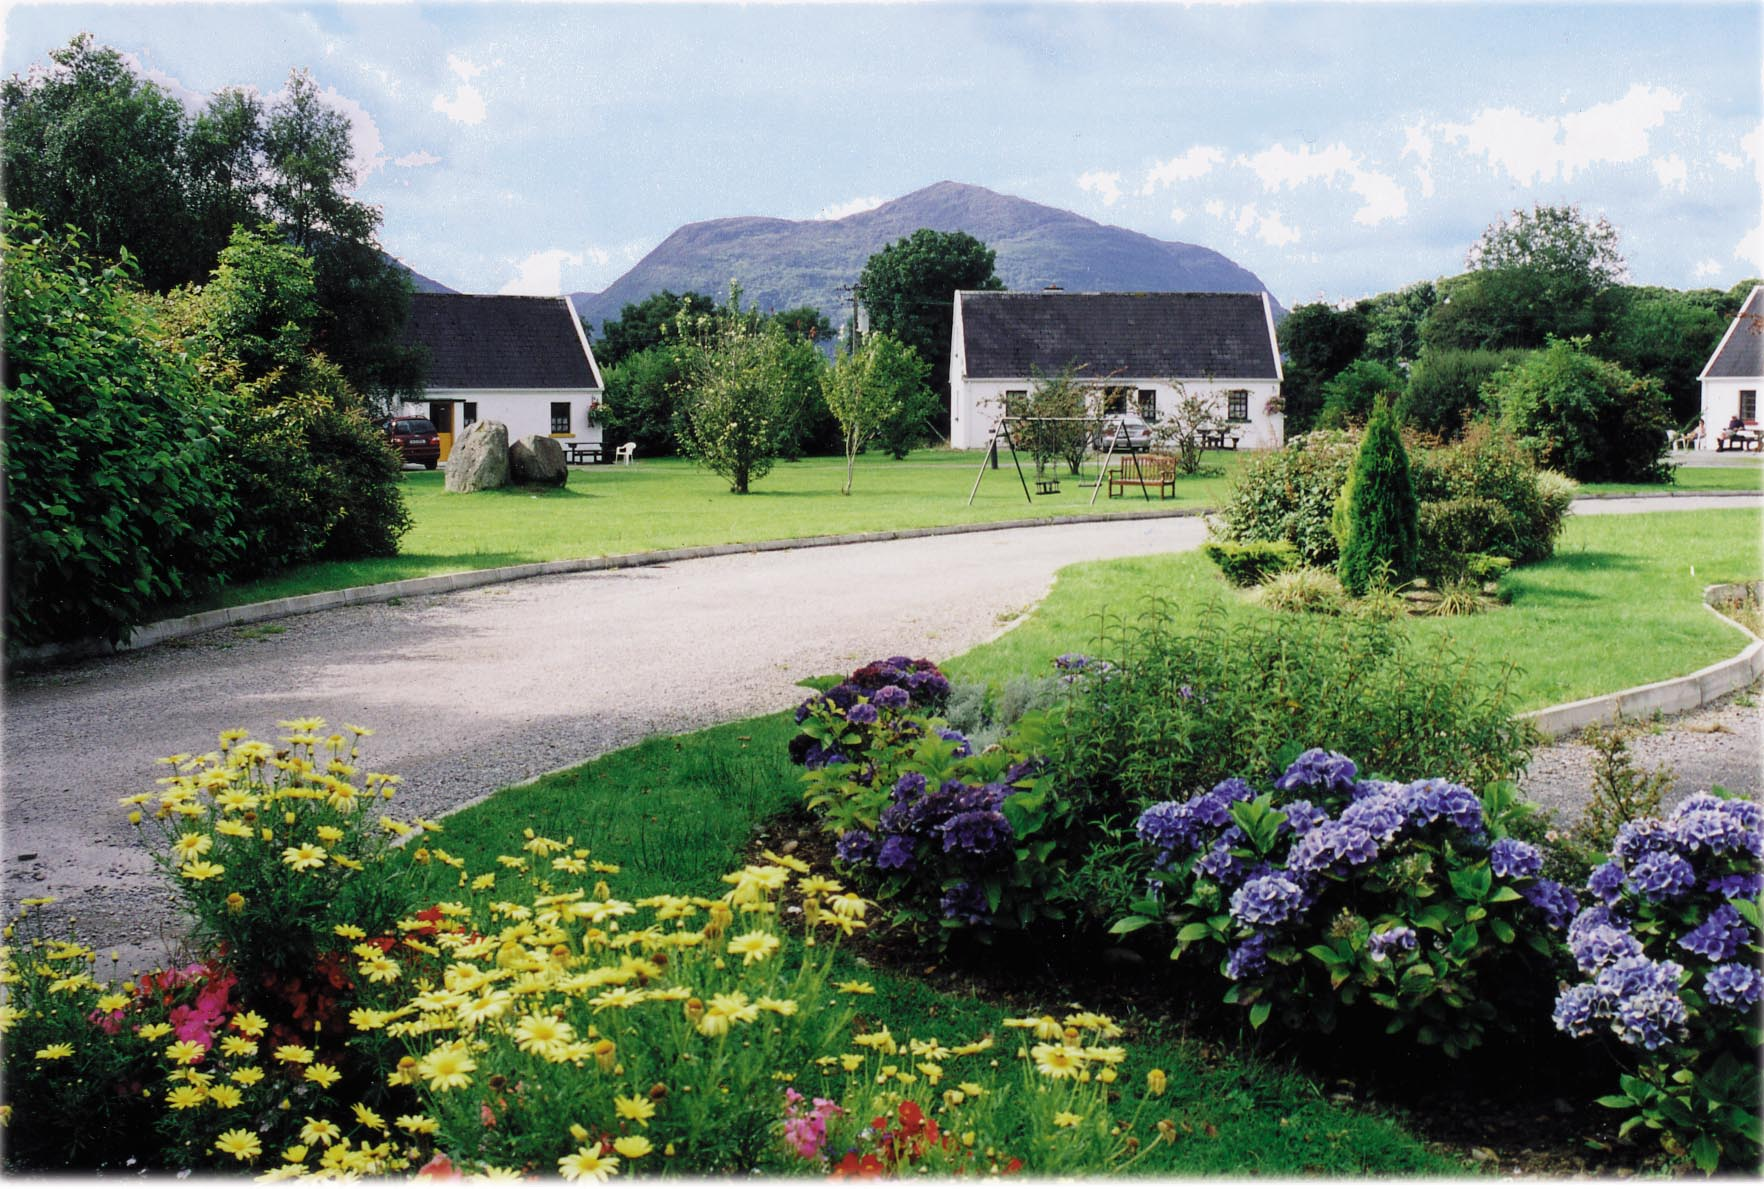 Killarney Lakeland Cottages